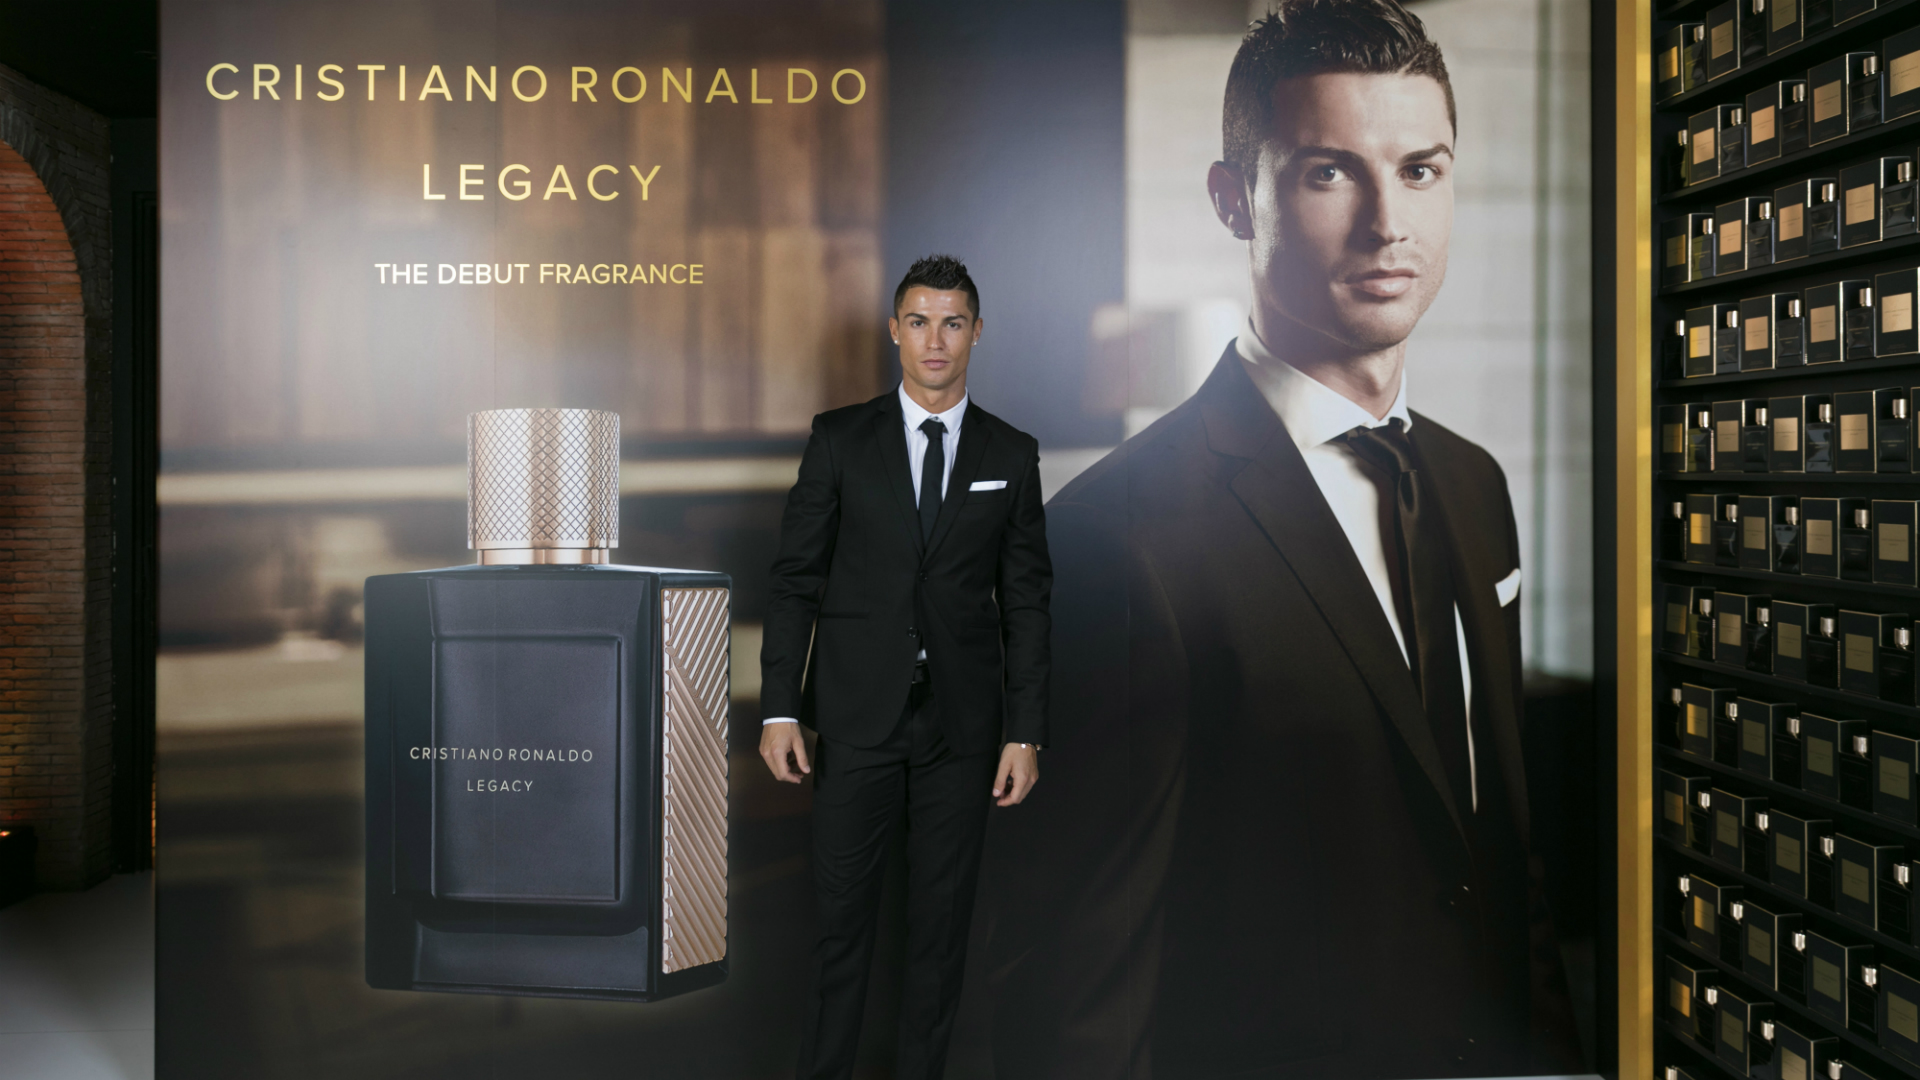 cristiano ronaldo real madrid star launches new fragrance. Black Bedroom Furniture Sets. Home Design Ideas